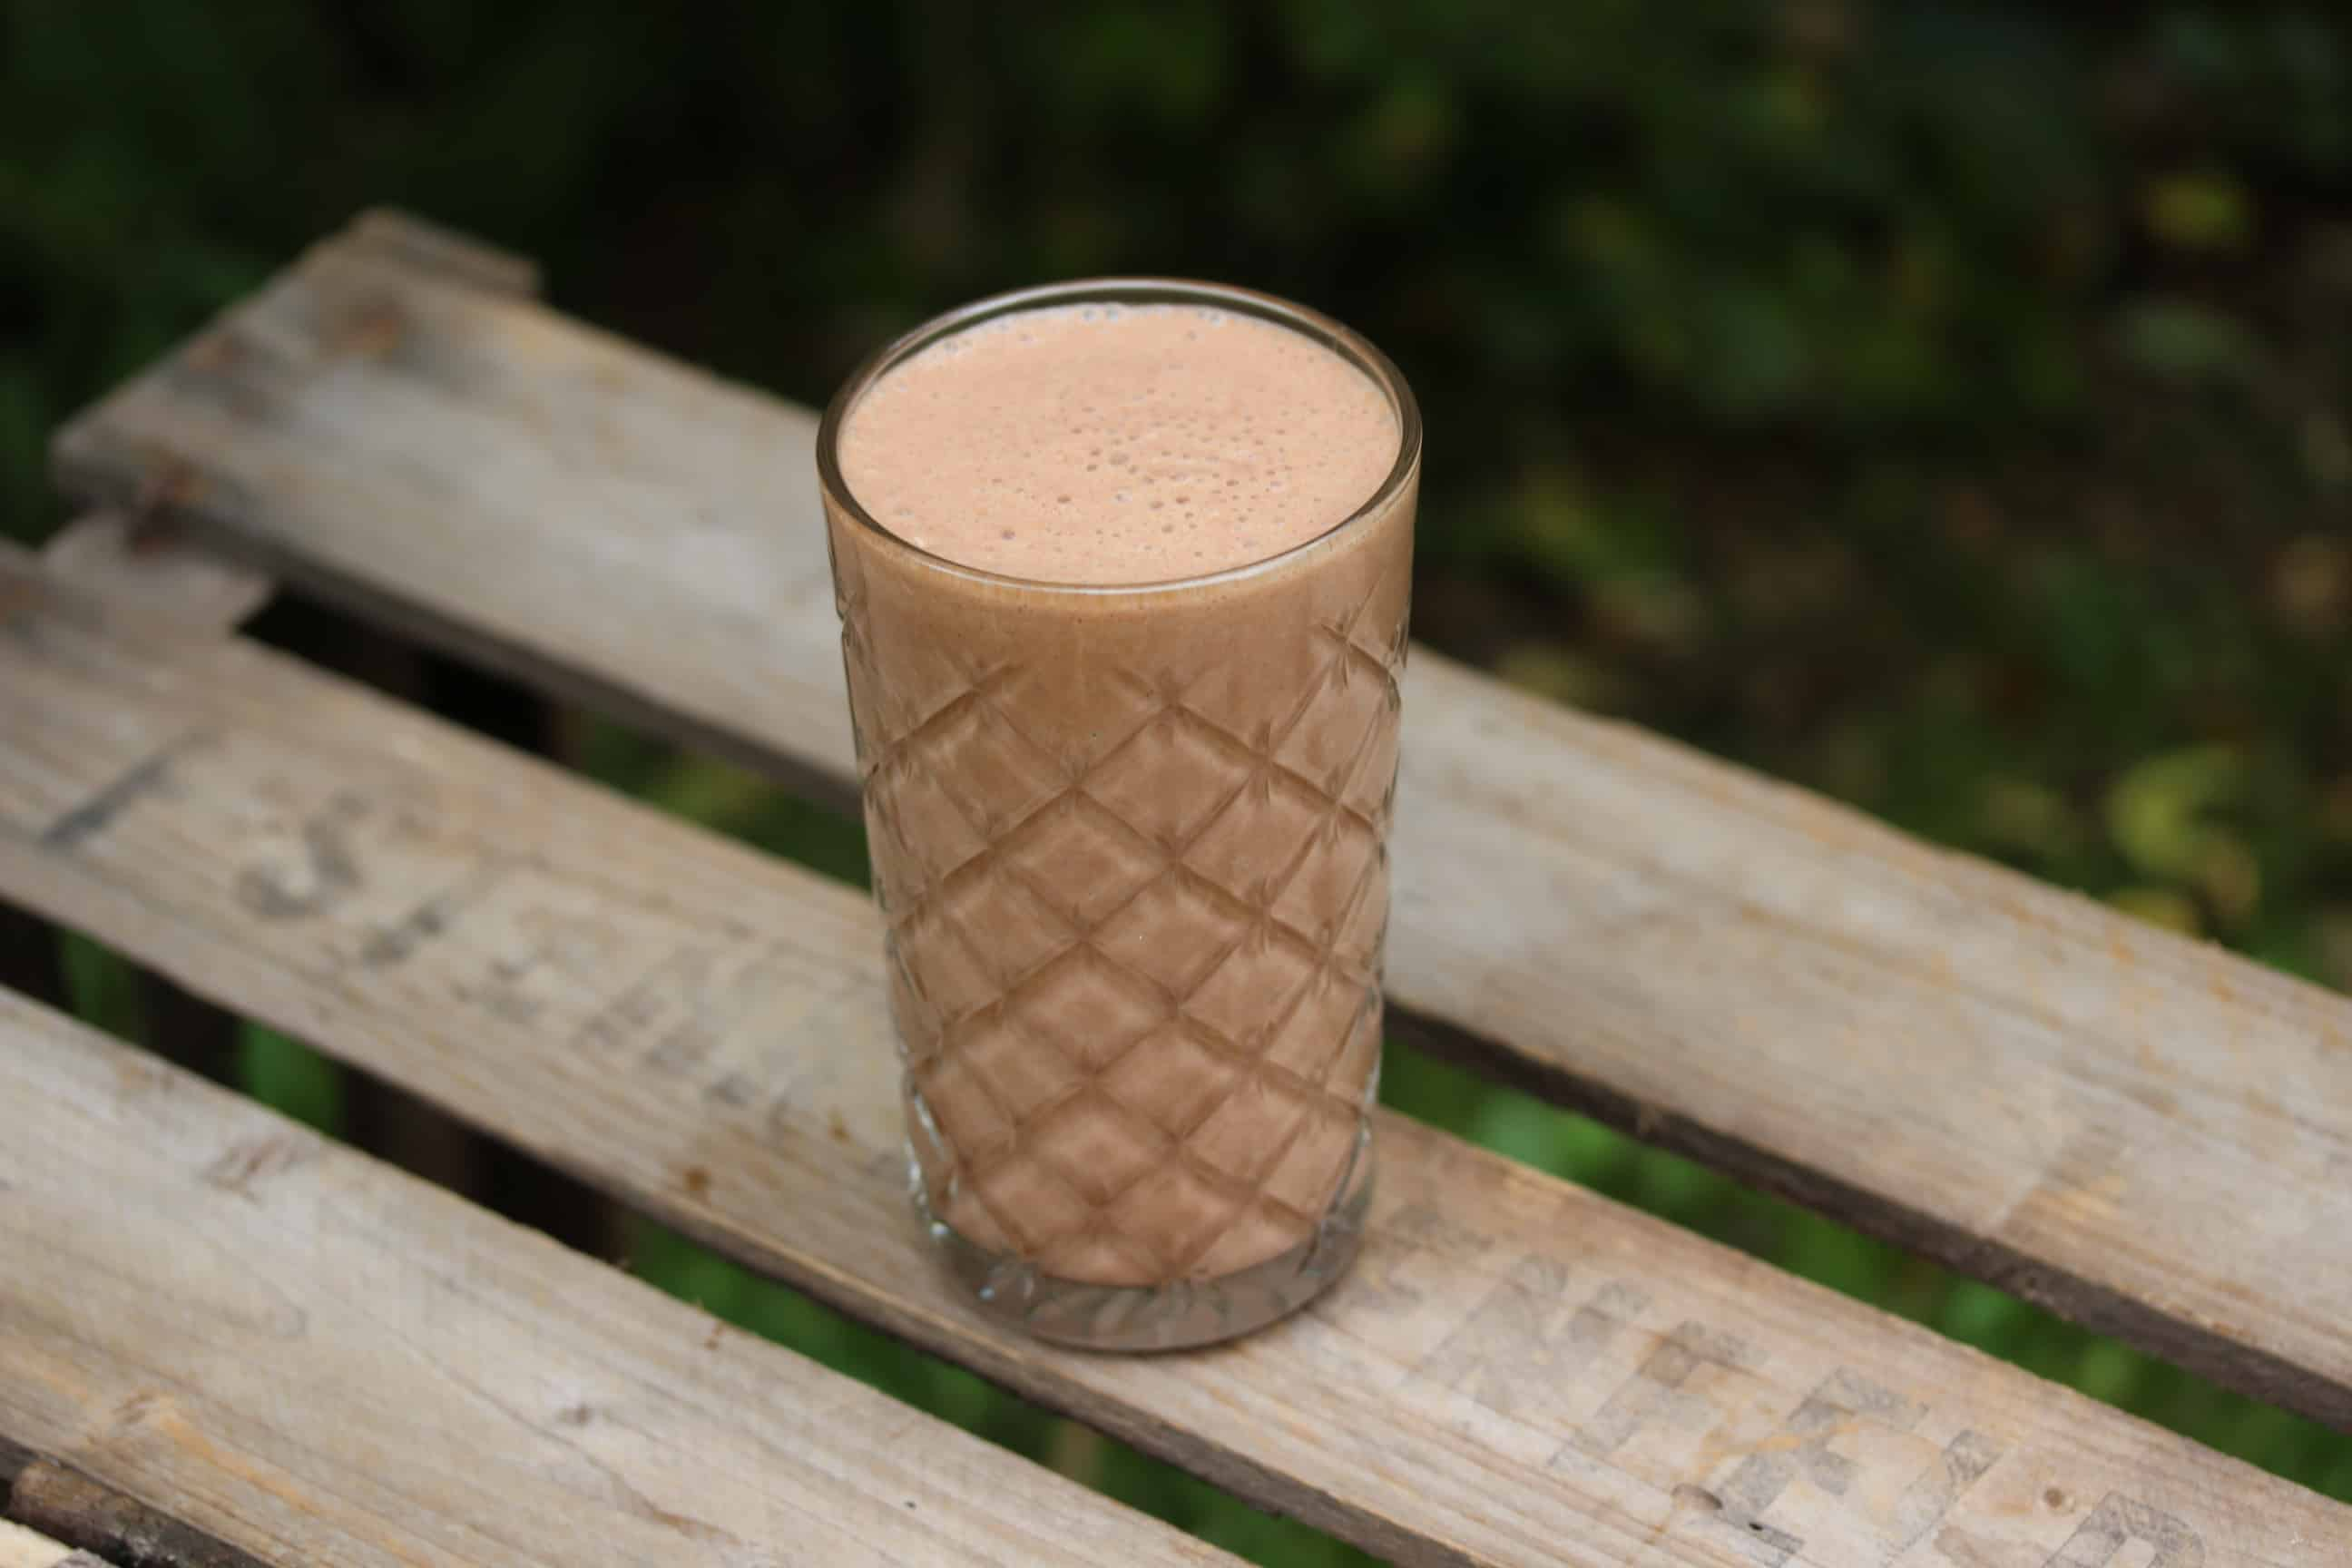 SuperGoodFood Banana-Coconut-Raw Cacao Proteinshake in Glas auf Holztisch